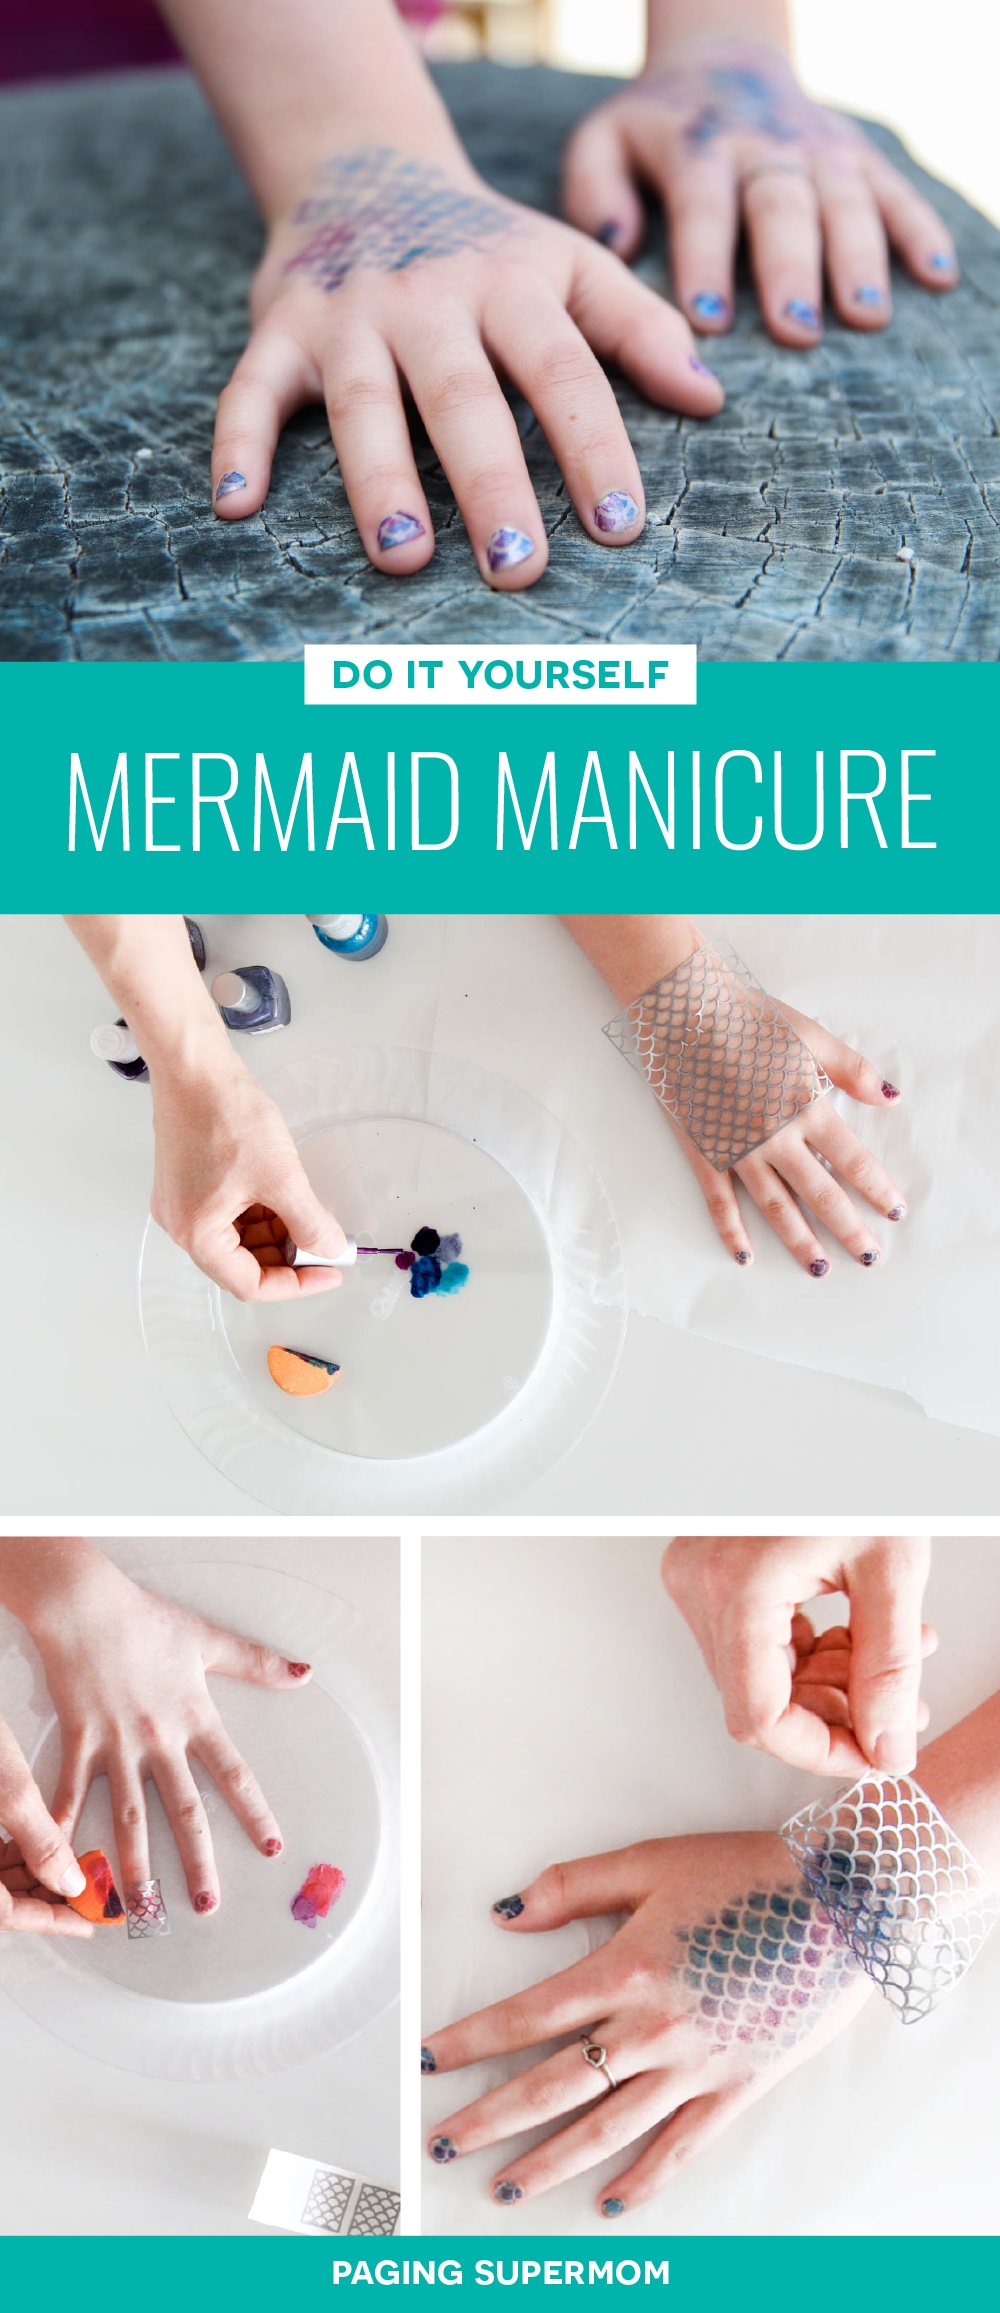 How to Do a Mermaid Manicure with Mermaid Nails and Mermaid Scales Temporary Tattoos on your hands. Photo Tutorial via @PagingSupermom